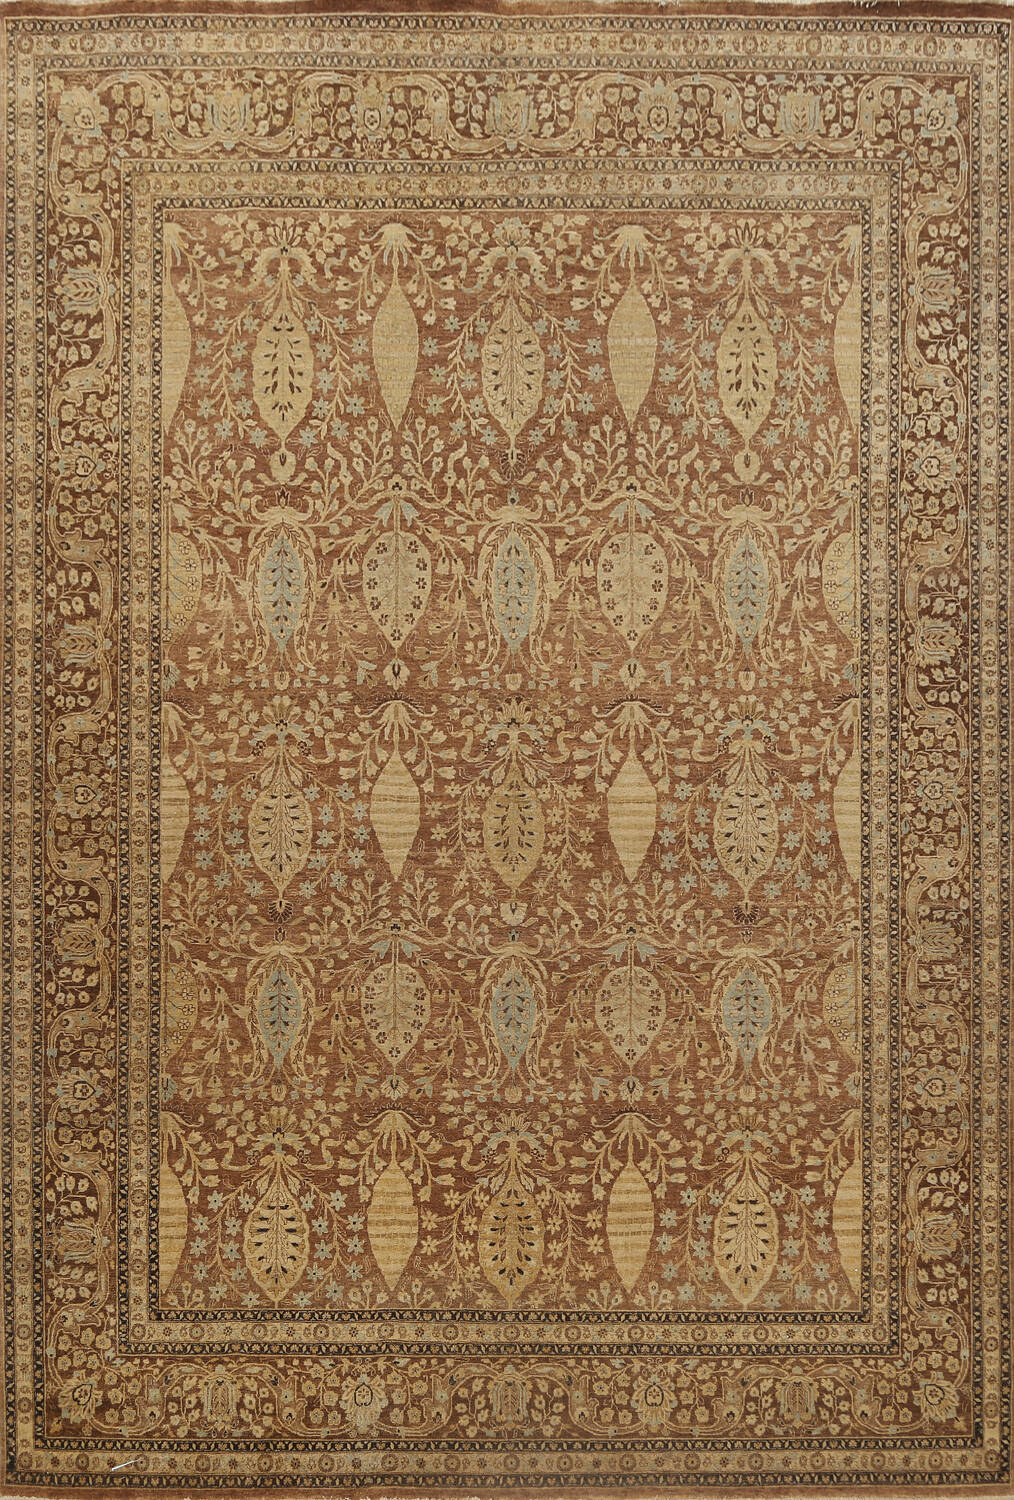 100% Vegetable Dye Floral Kashan Oriental Area Rug 9x12 image 1